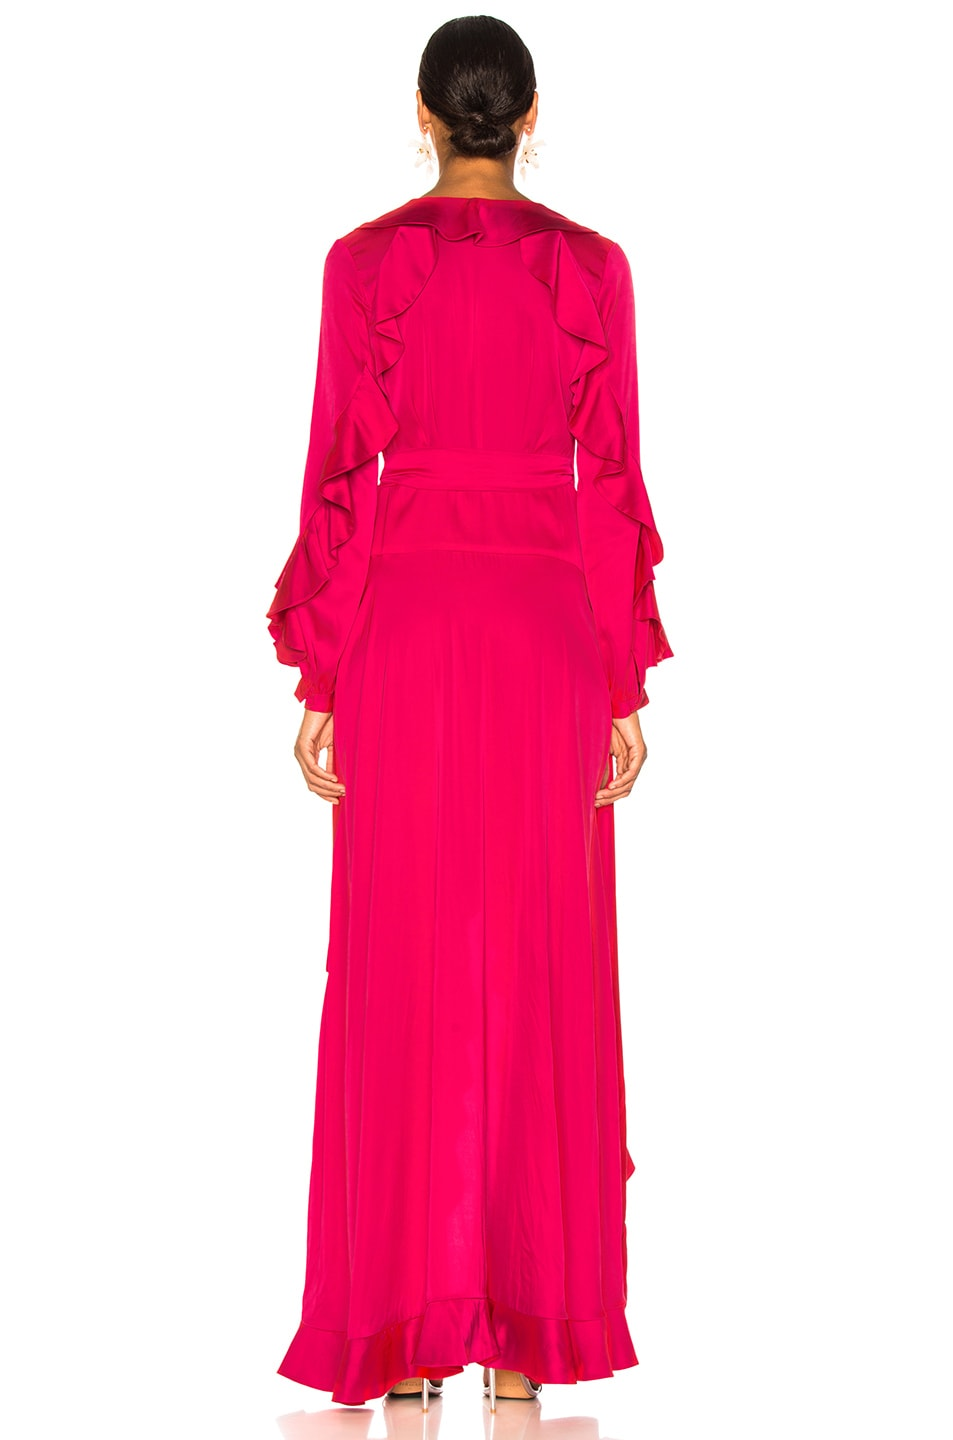 Image 4 of PatBO Ruffle Sleeve Maxi Wrap Dress in Hot Pink